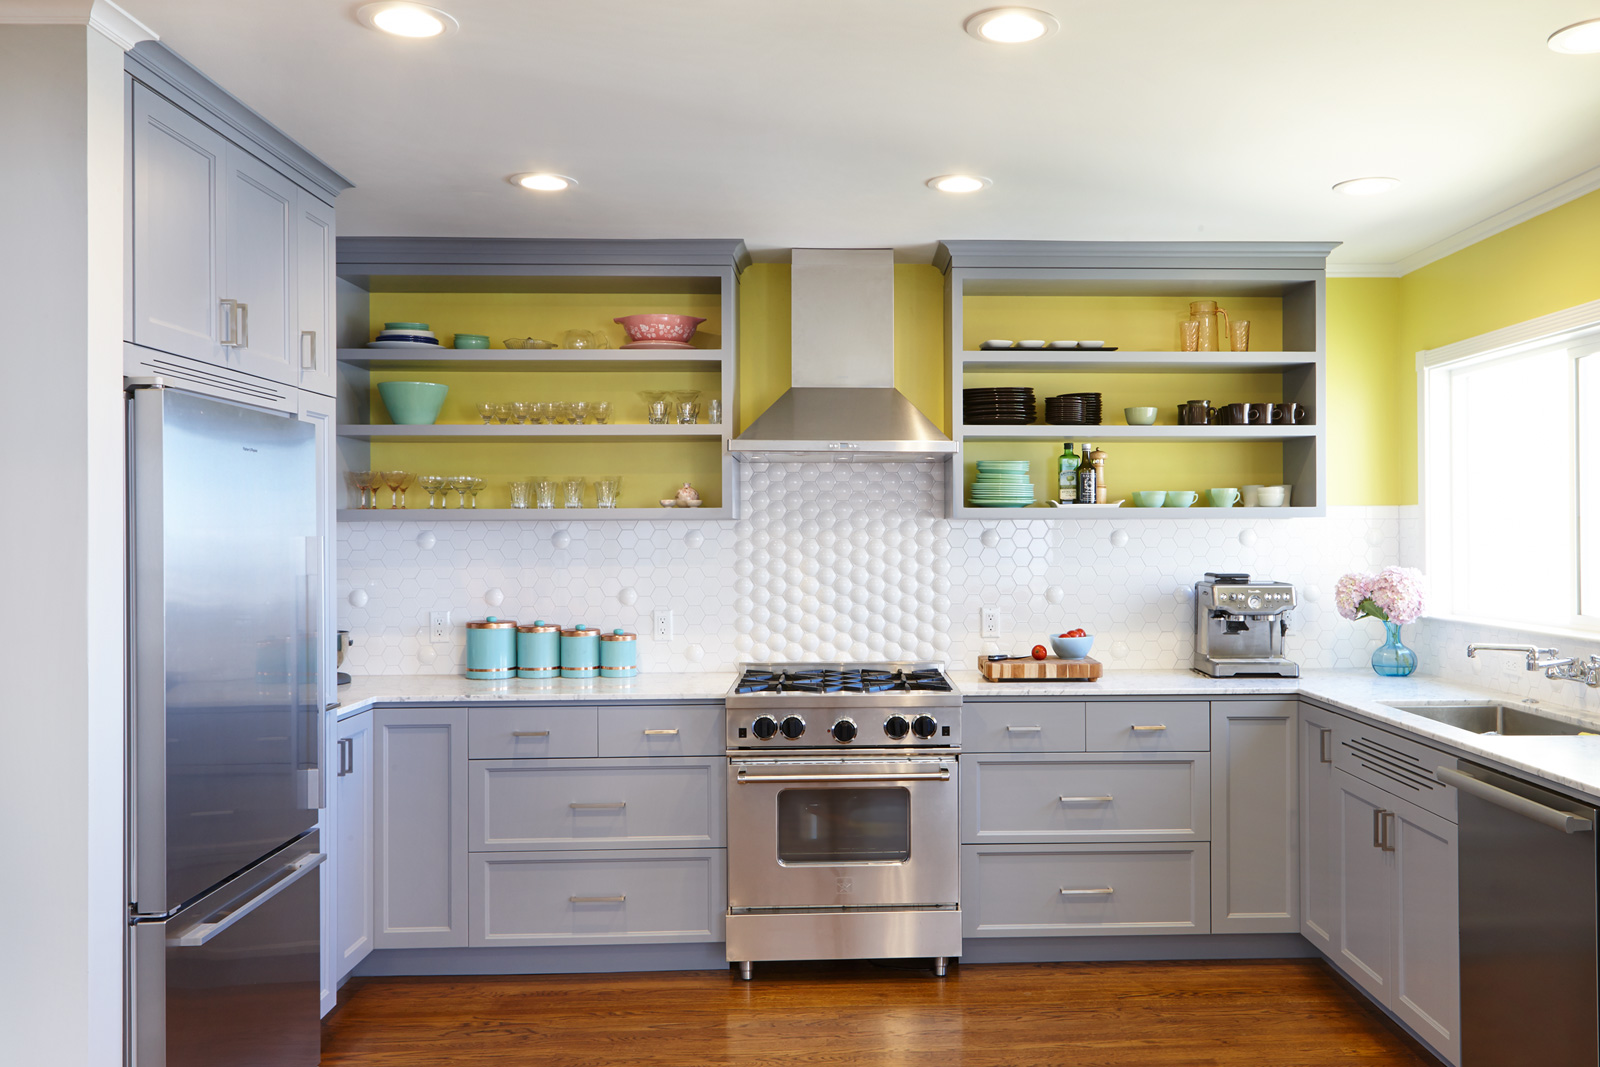 Best Paint For Kitchen Cabinets Paint For Kitchens - What's the best paint to use for kitchen cabinets